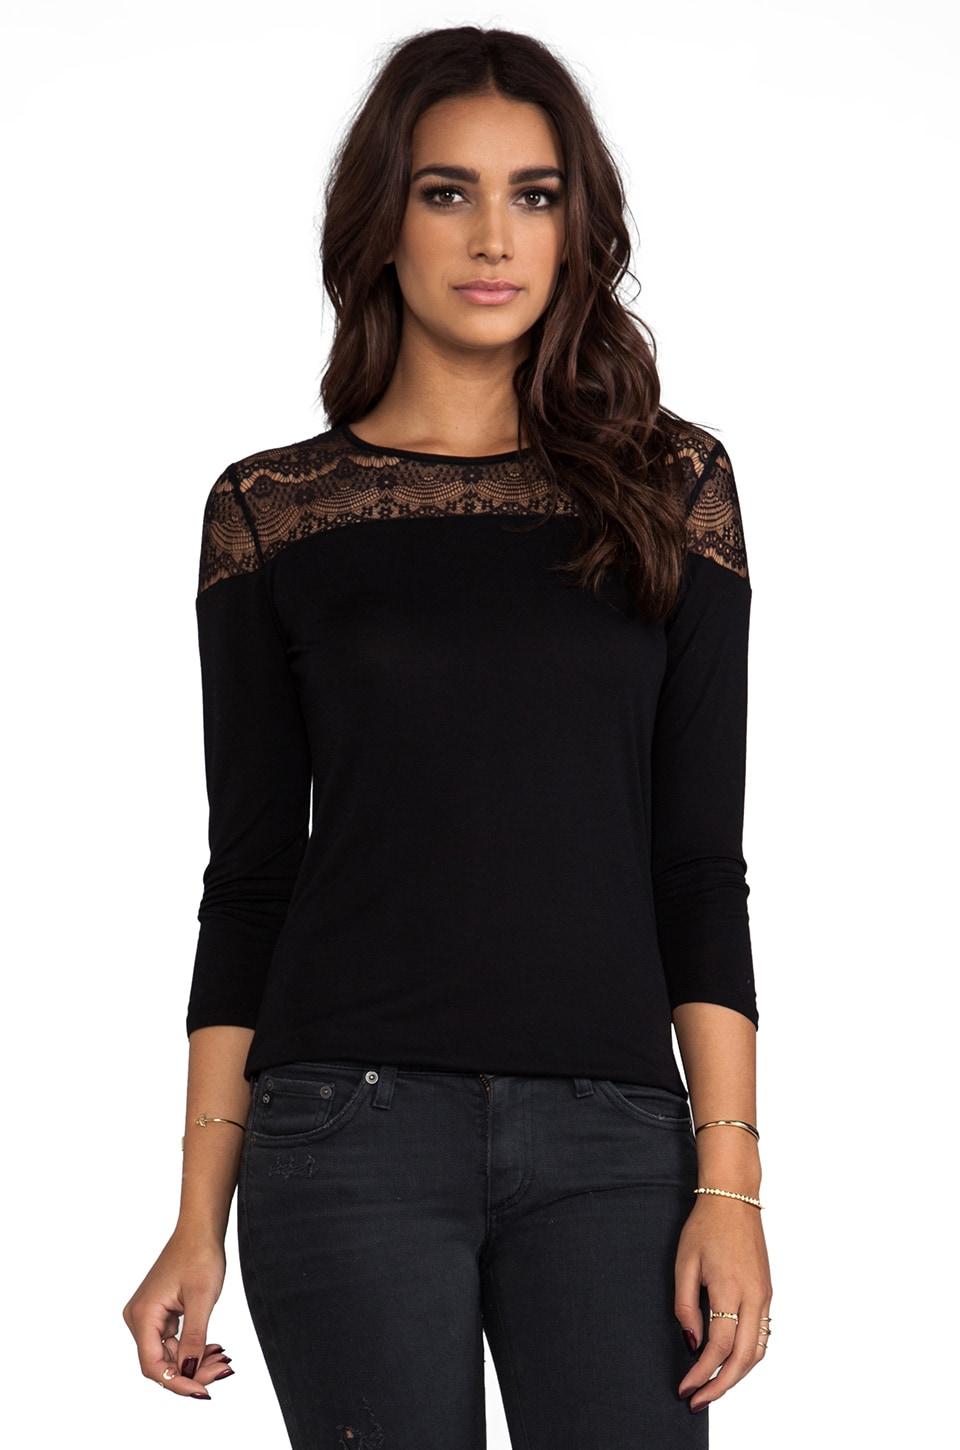 C&C California Long Sleeve Lace Top in Black